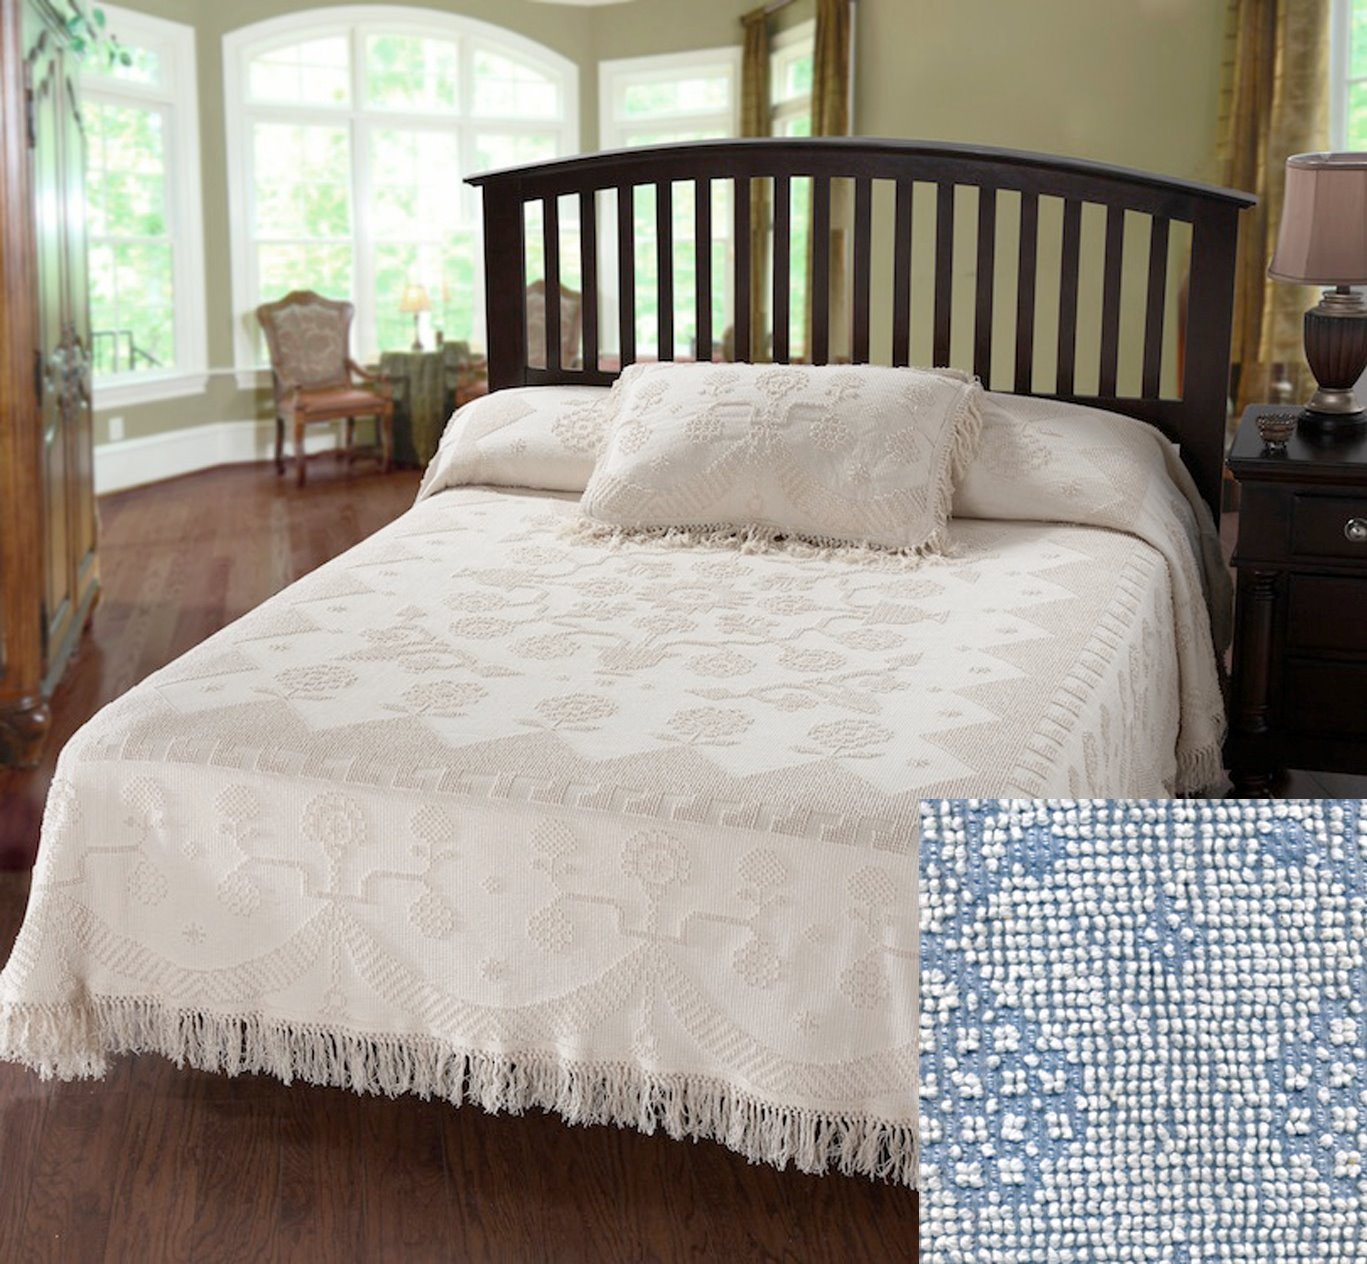 George Washington Bedspread King Blue